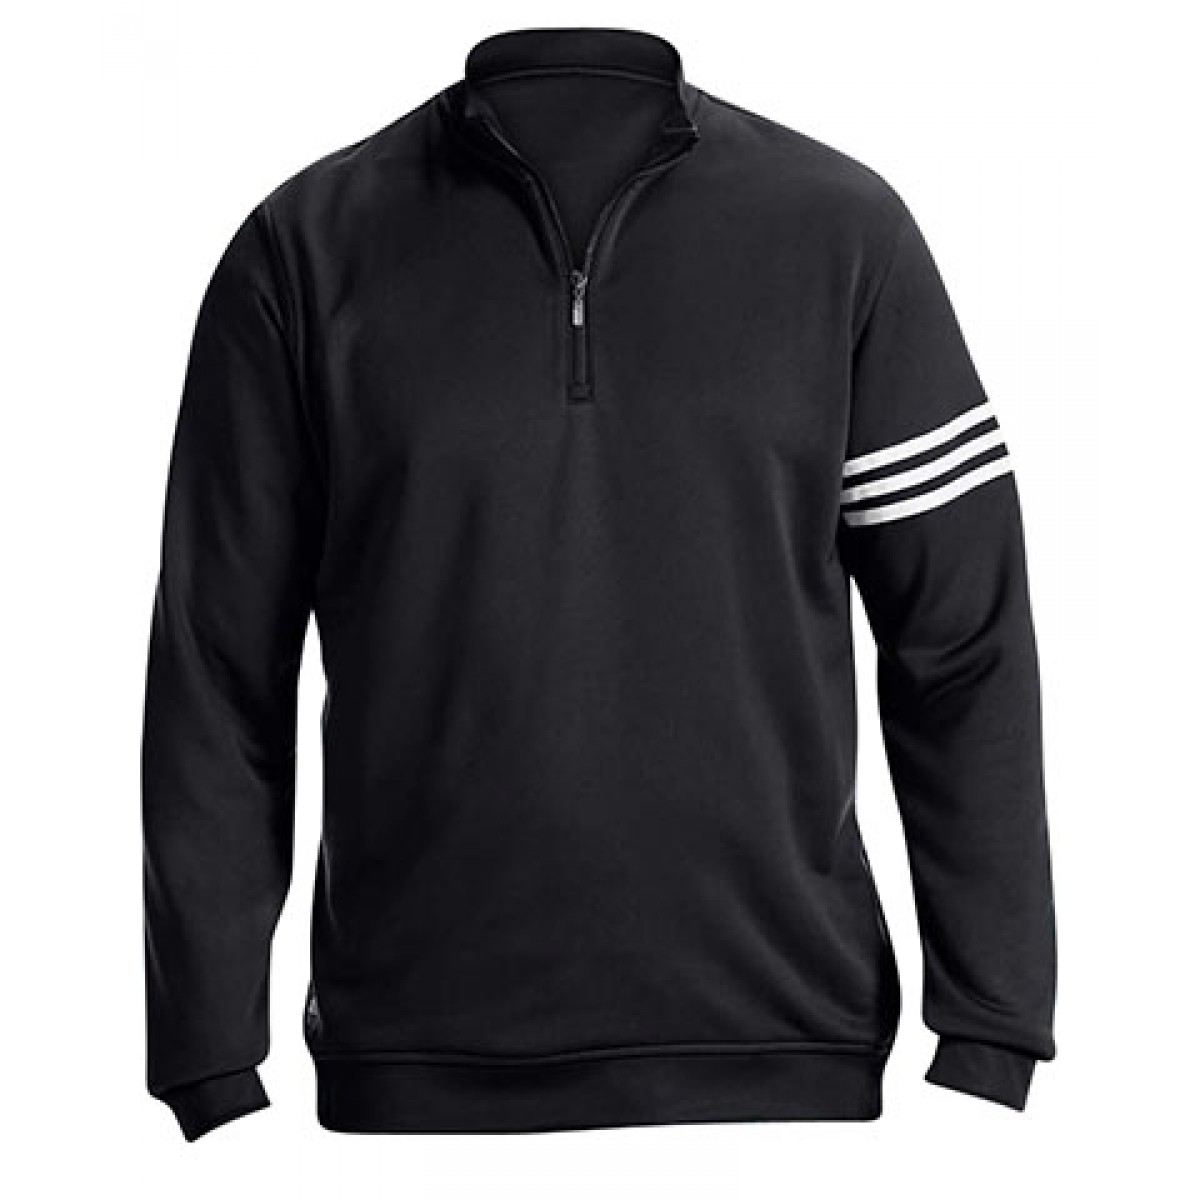 Adidas Golf Men's ClimaLite® 3-Stripes Pullover-Black-S